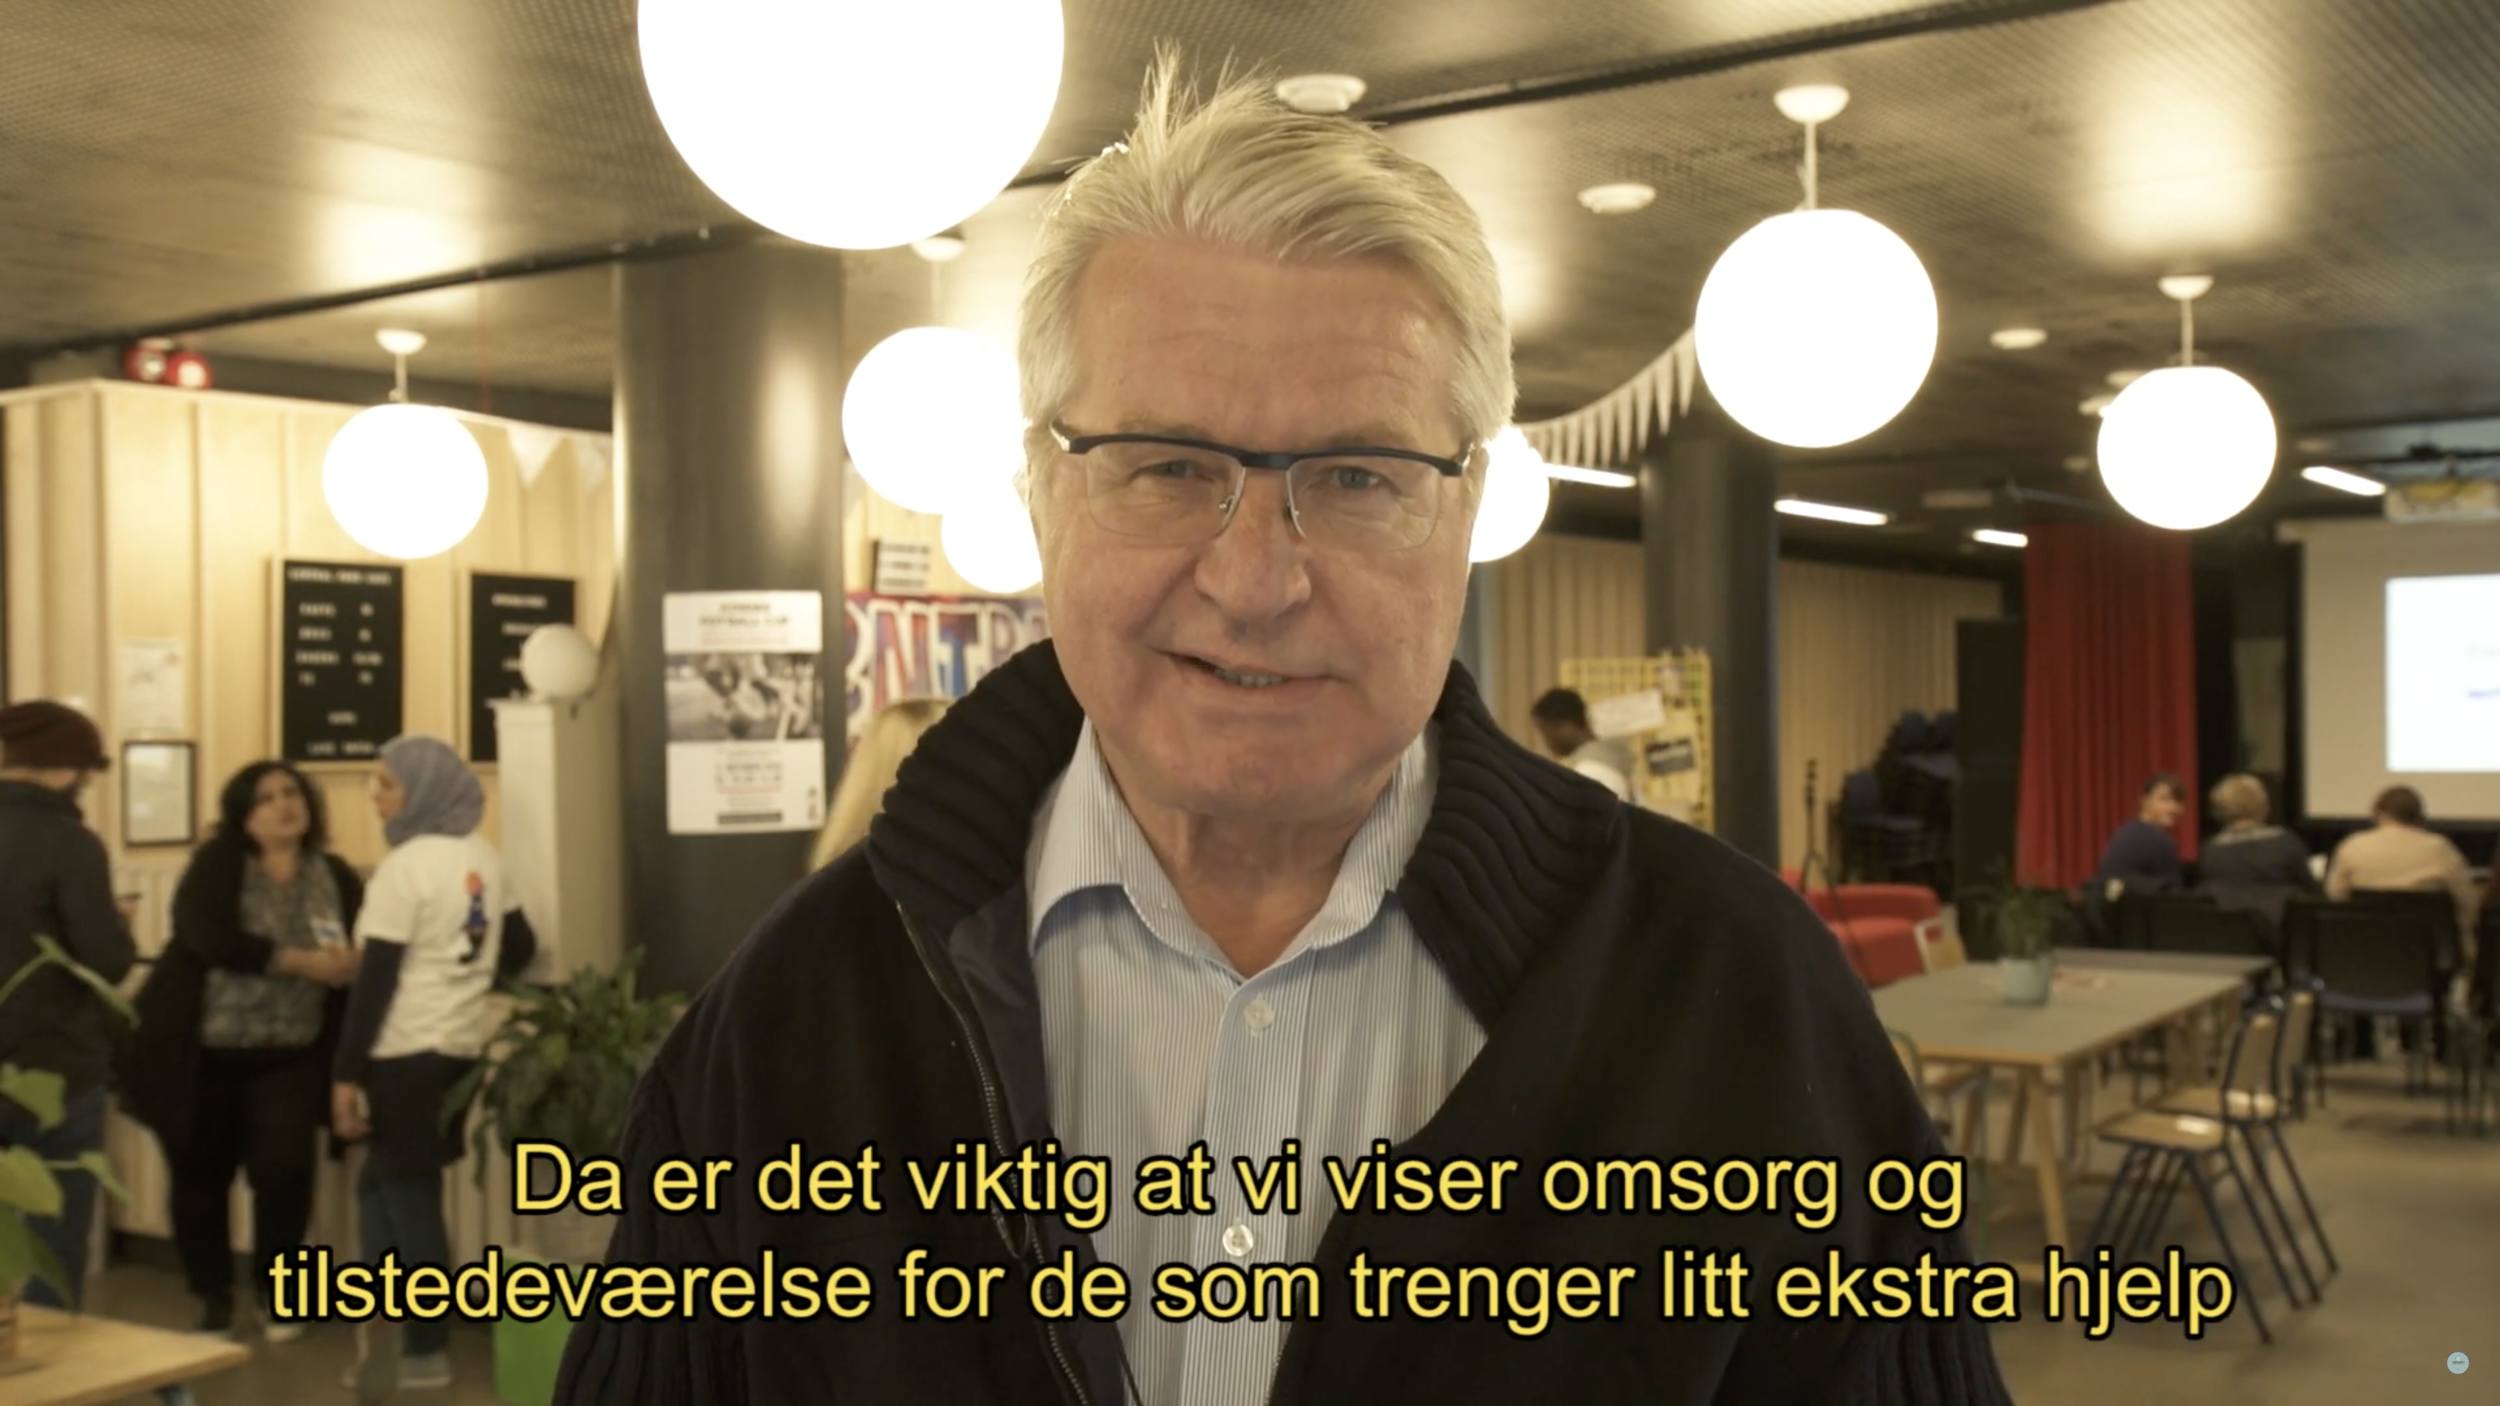 Appeal from politician /former mayor Fabian Stang